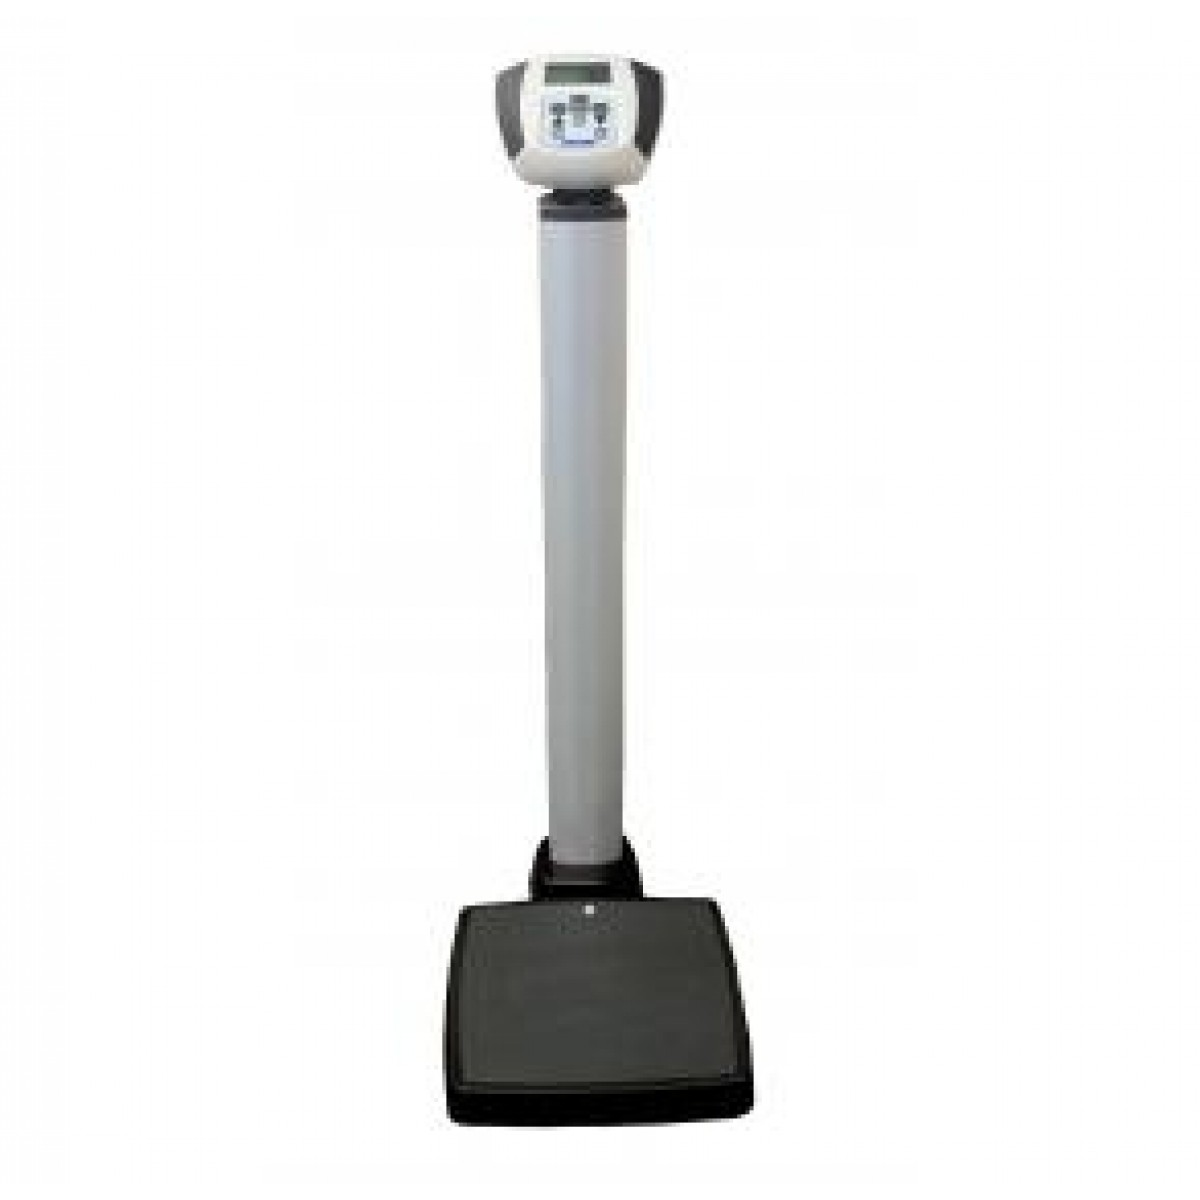 Health_o_meter_digital_physician_scales,_model_597kl_and_599kl